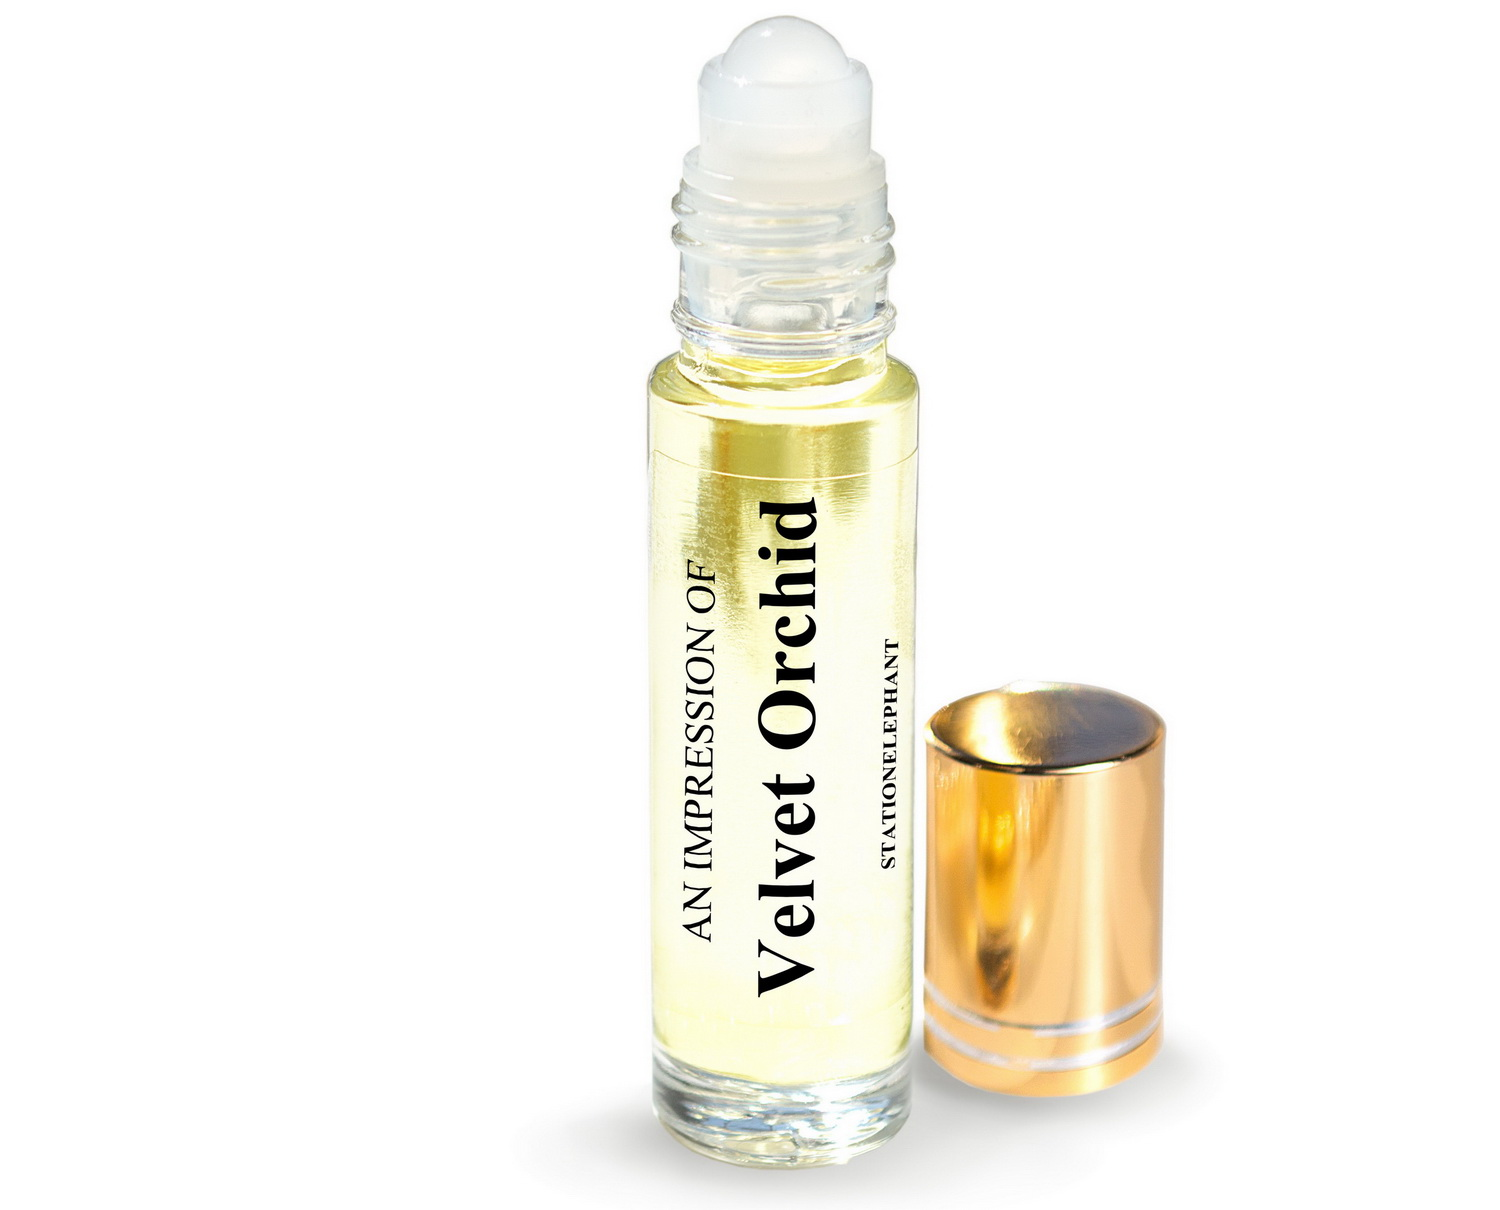 Velvet Orchid Type Vegan Perfume Oil Stationelephant